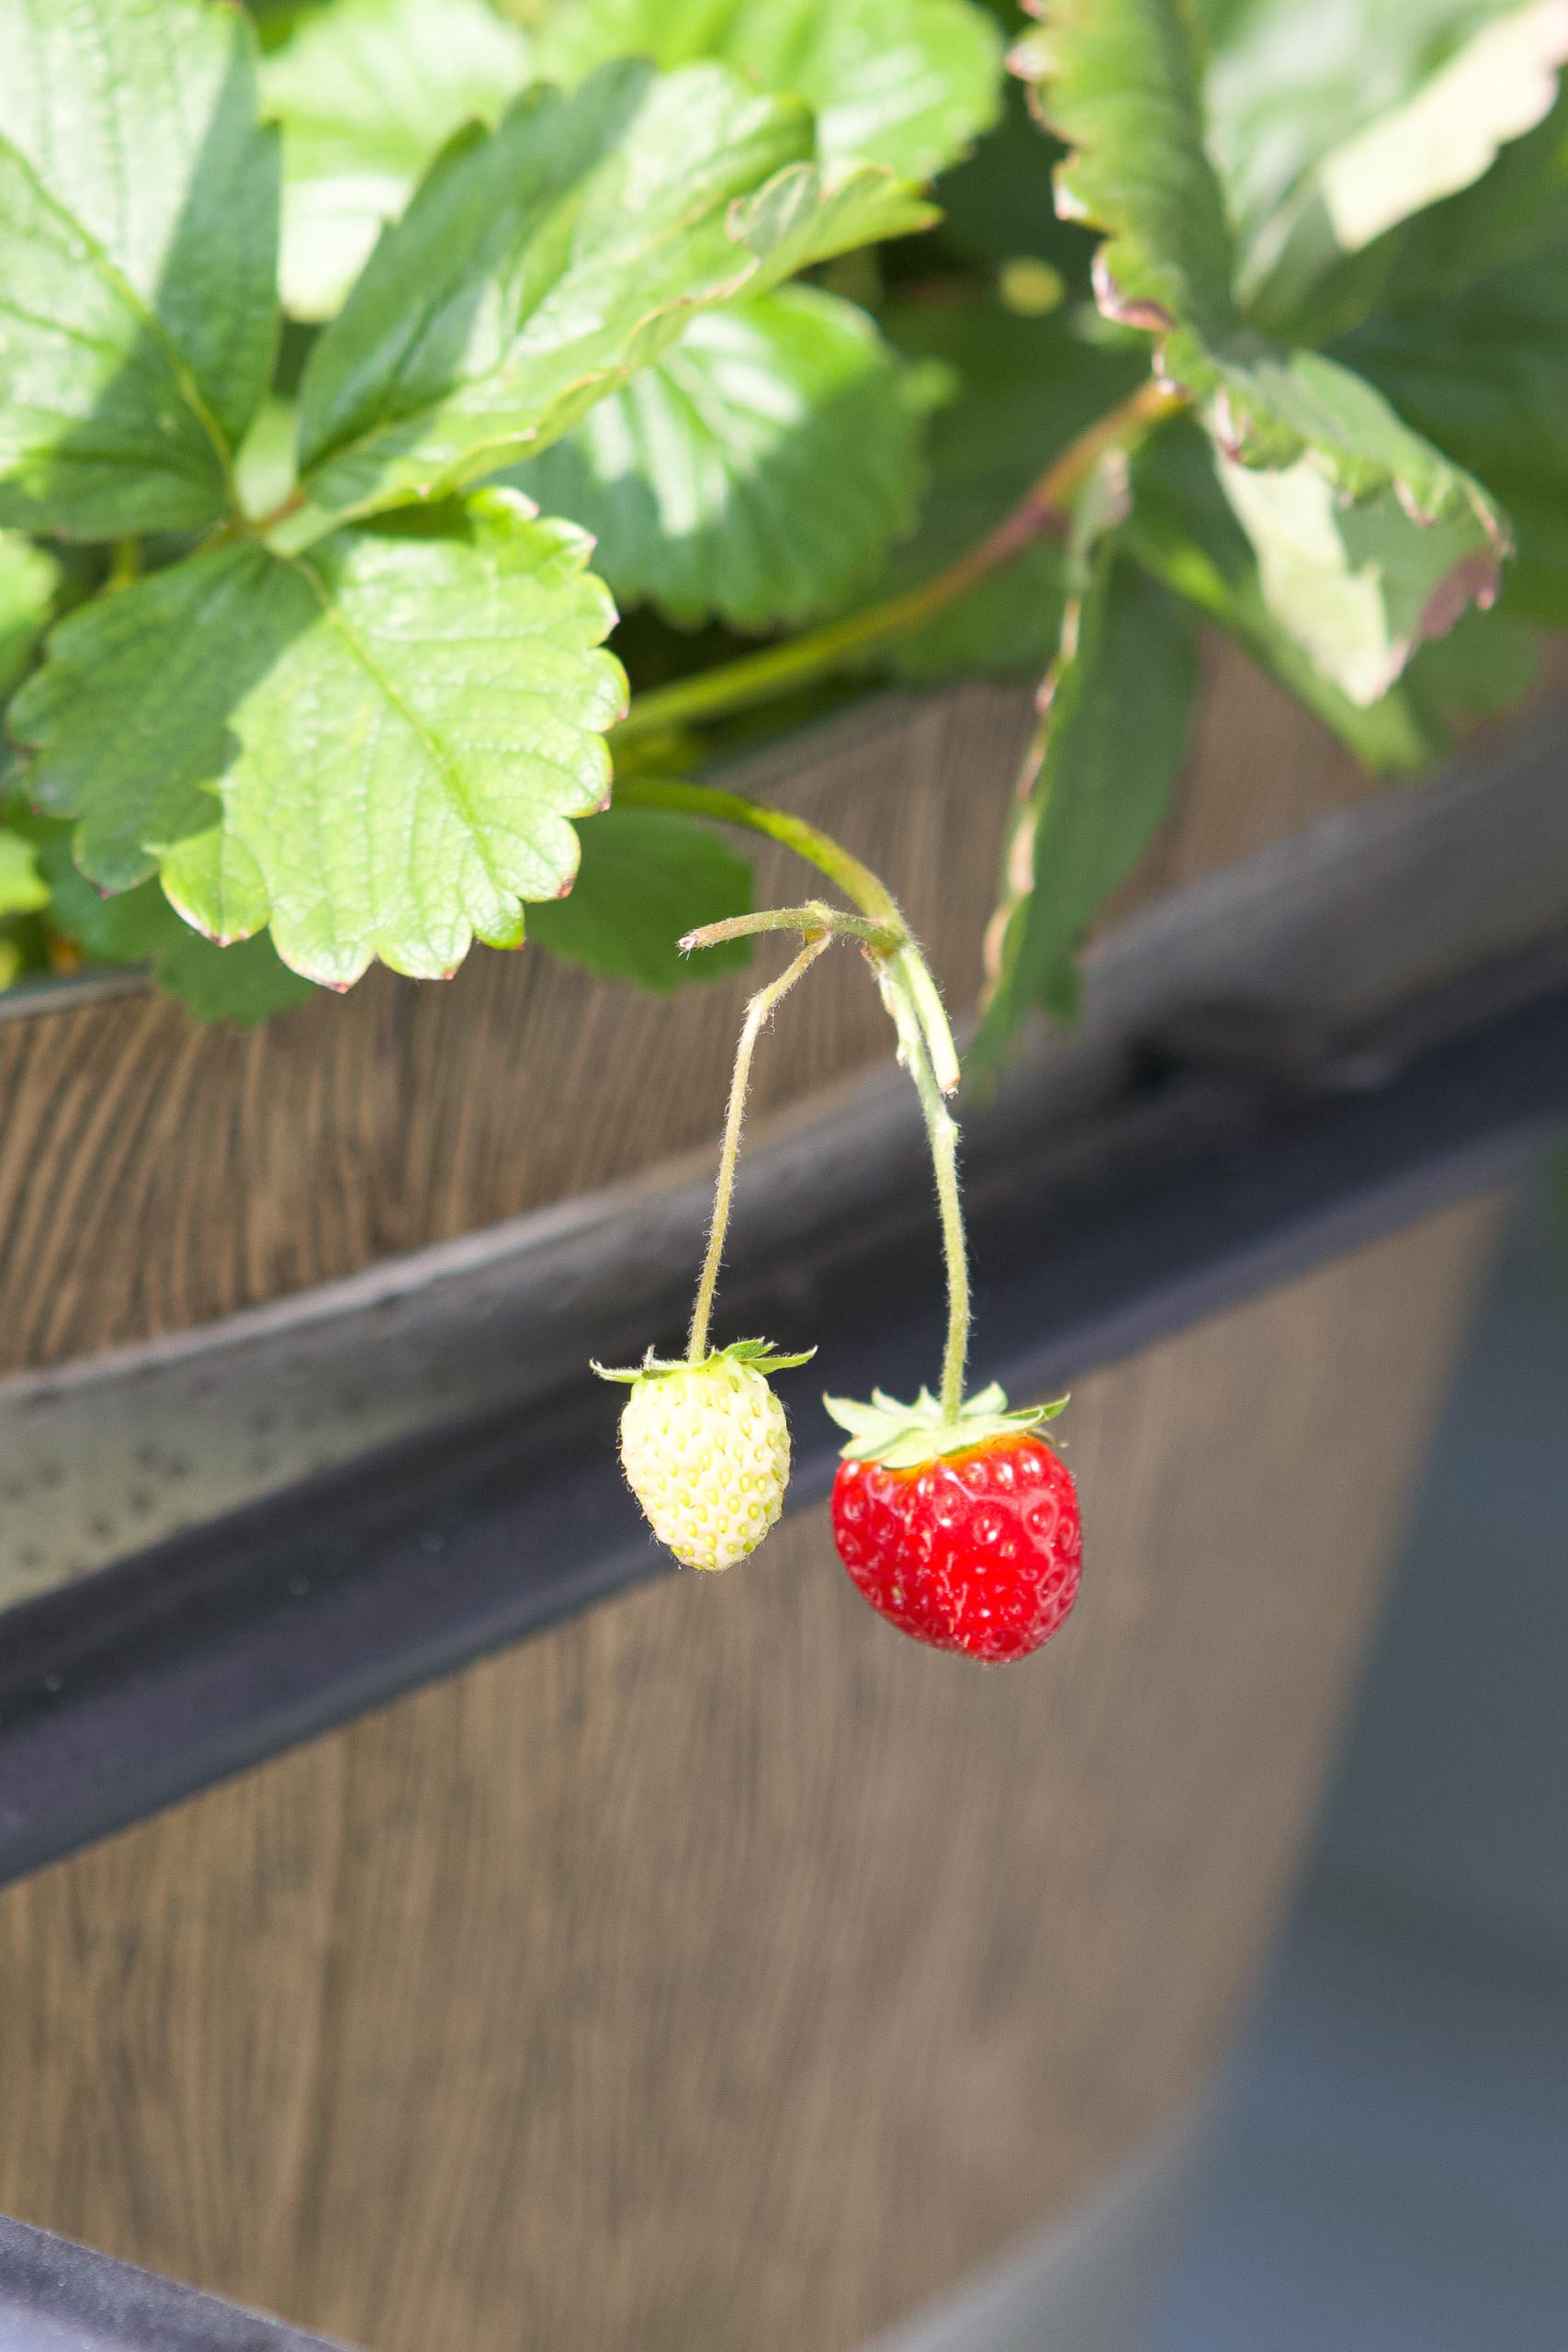 Growing strawberries in the backyard